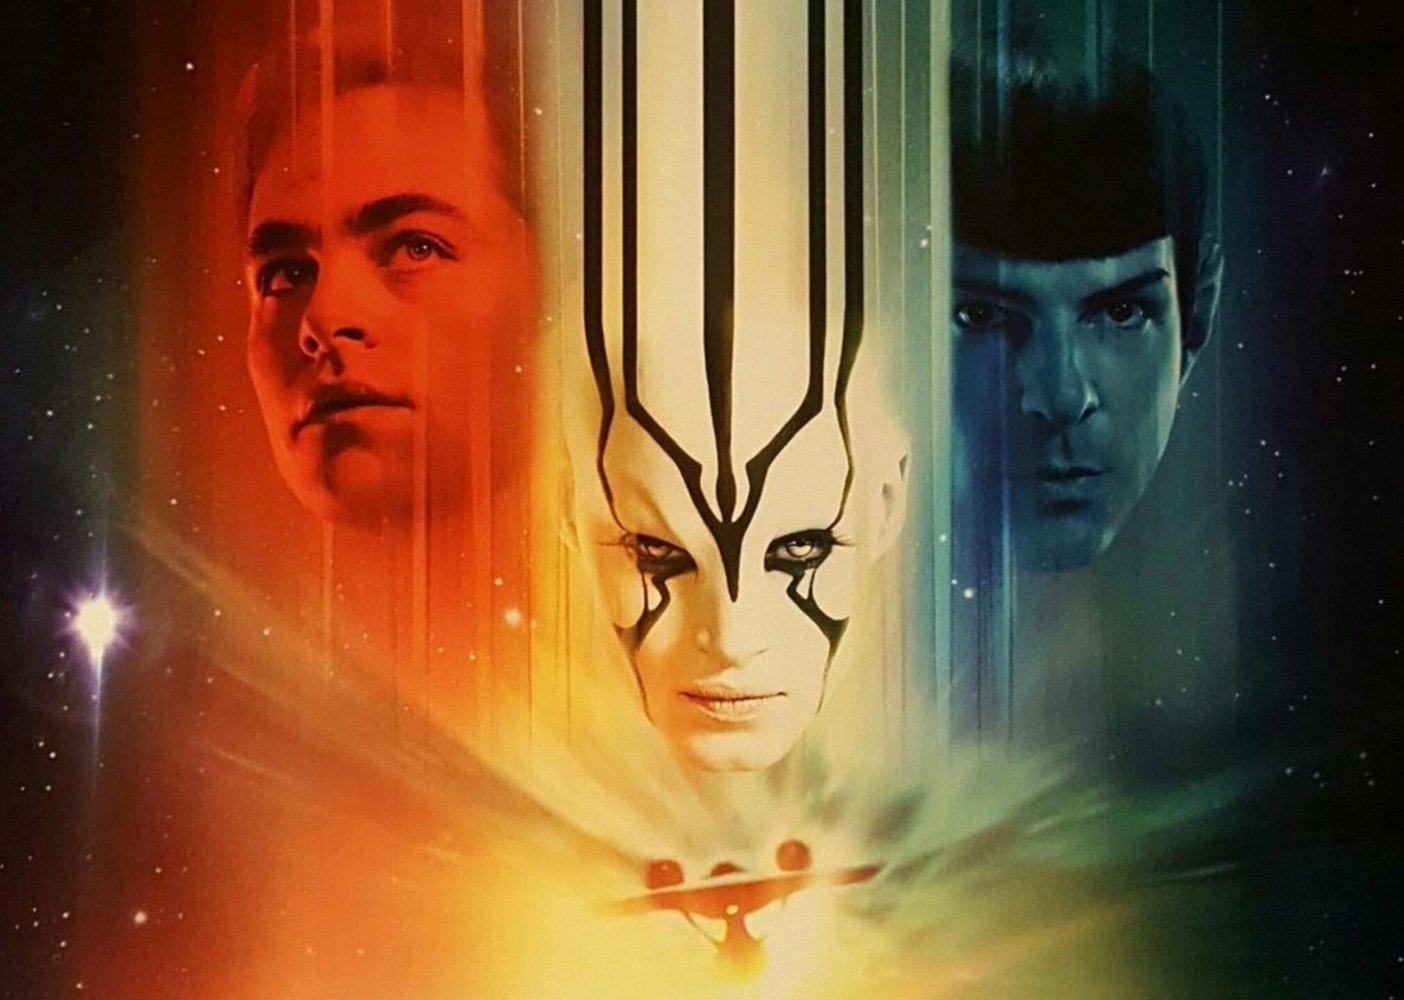 'Star Trek Beyond' Brings Back the Adventure